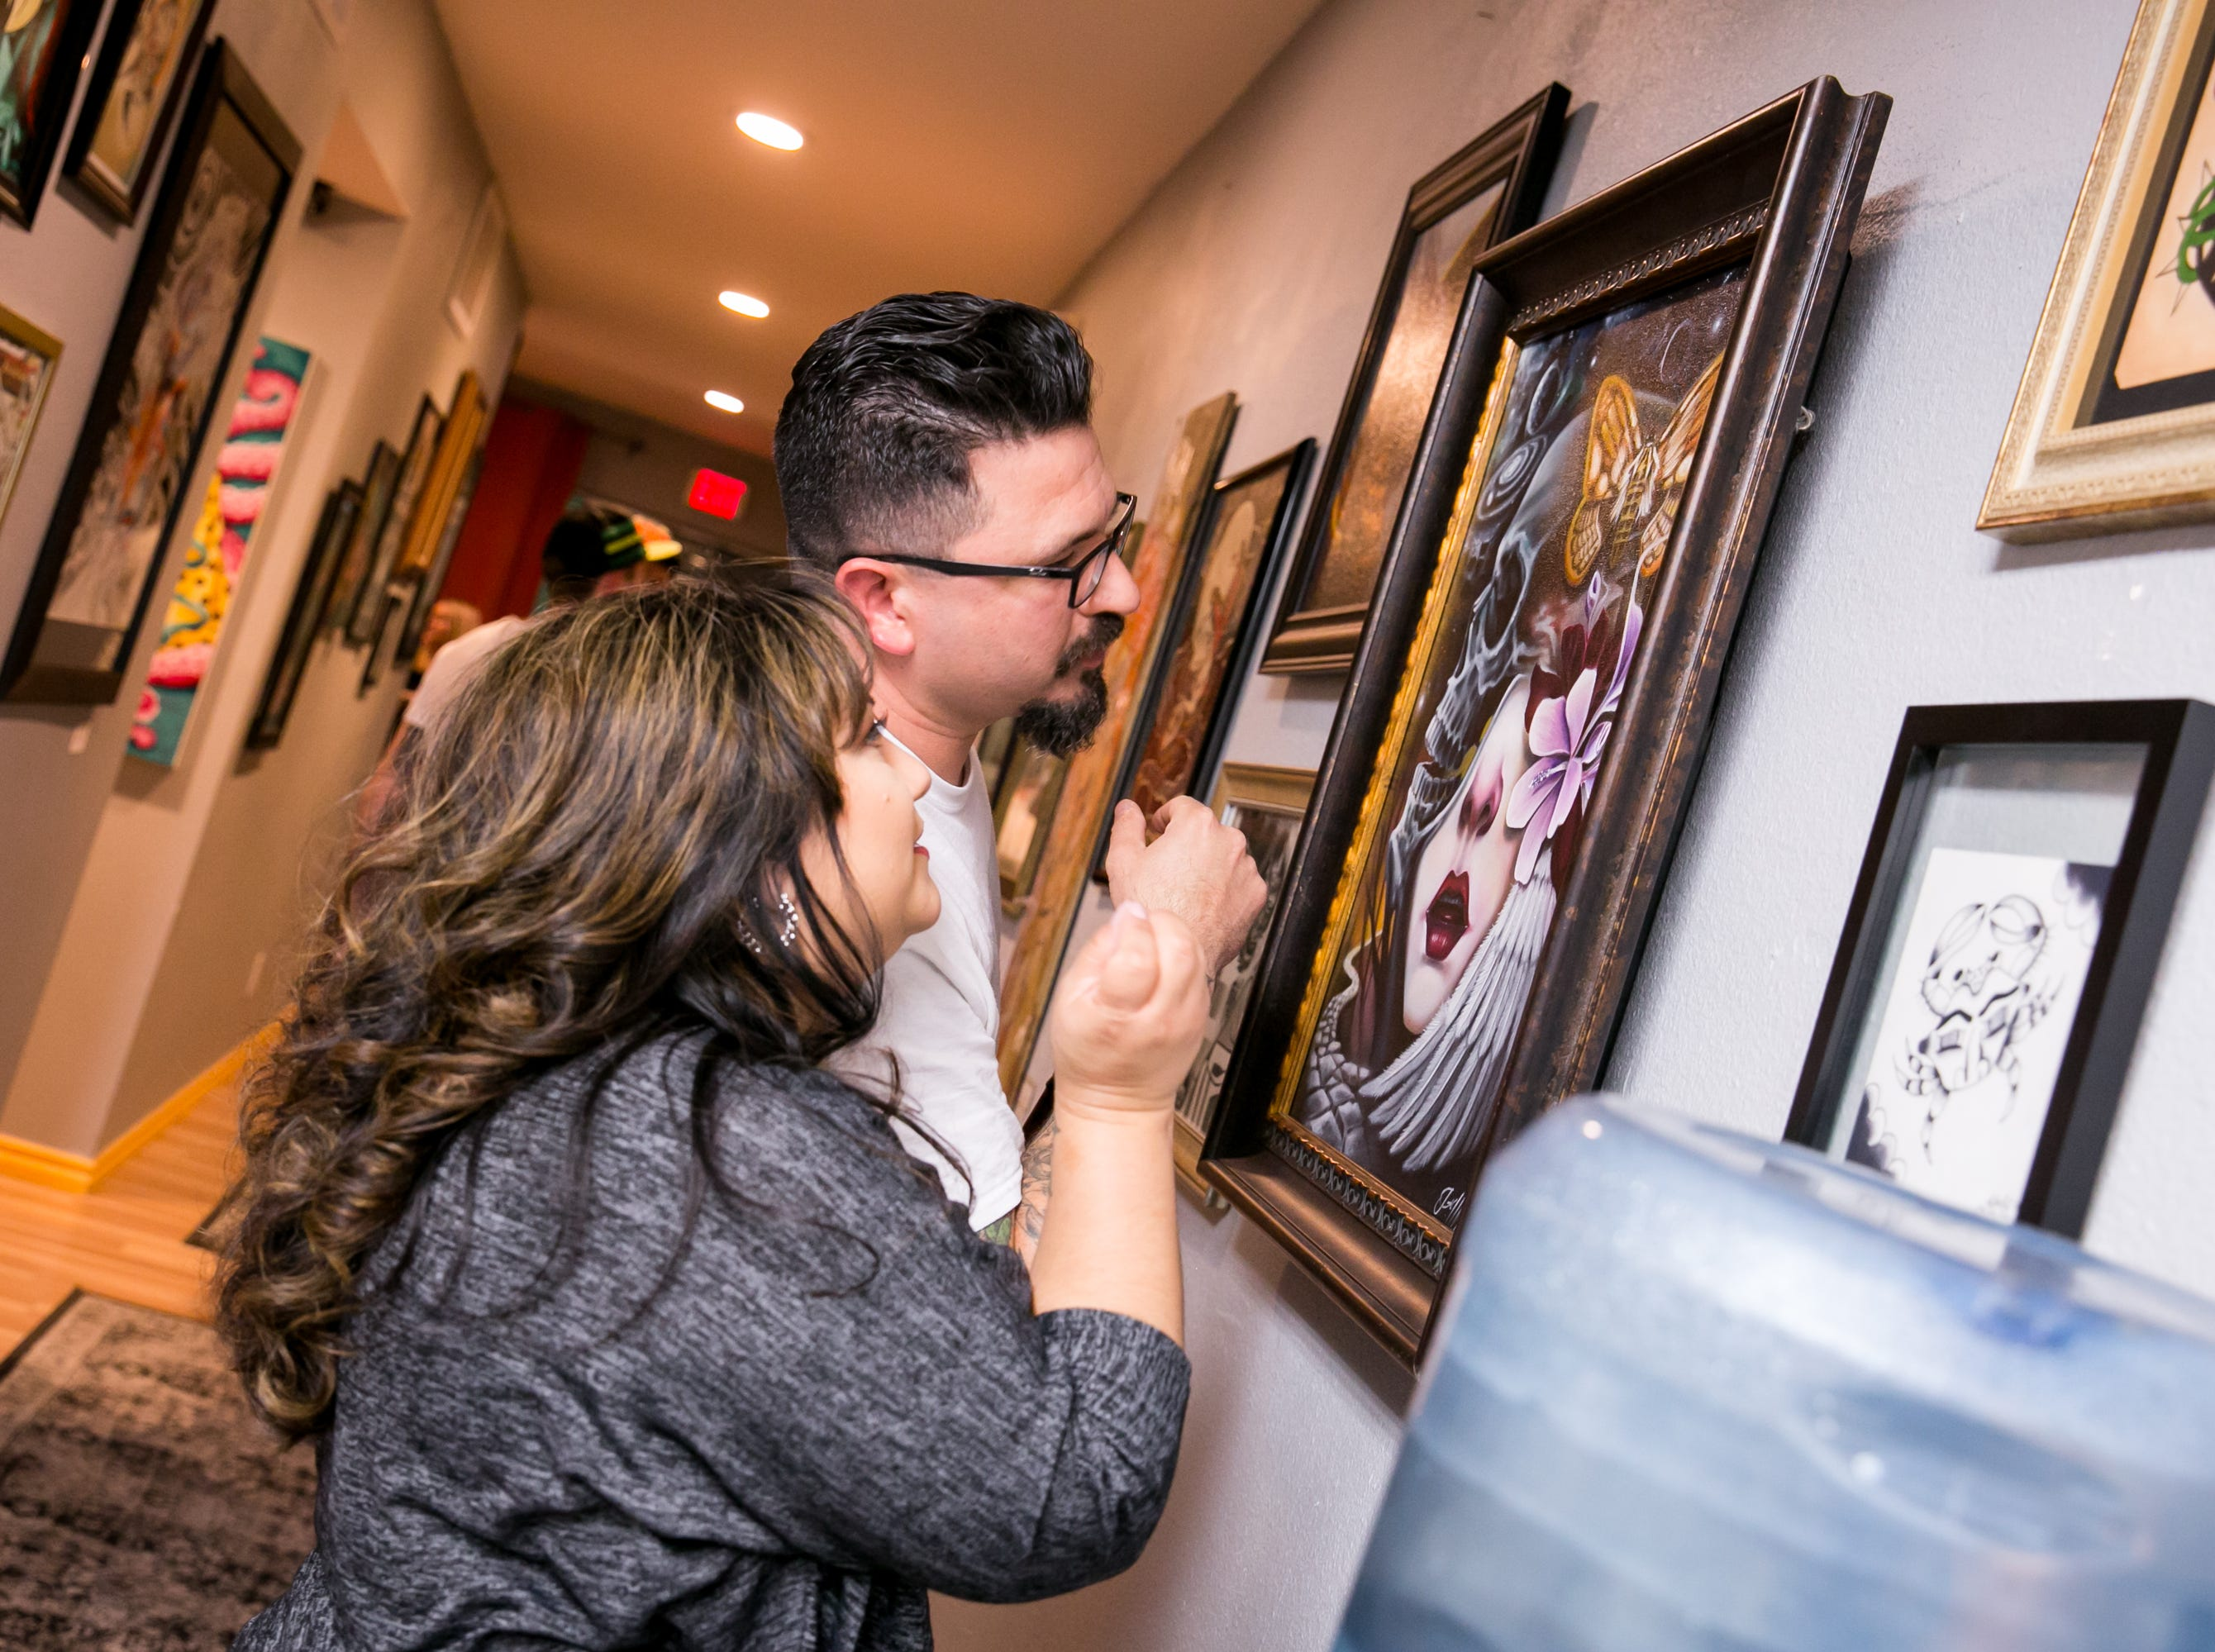 Attendees scope out the art during The Heart of Town tattoo art show at Lighten Up Laser during First Friday on October 5, 2018.